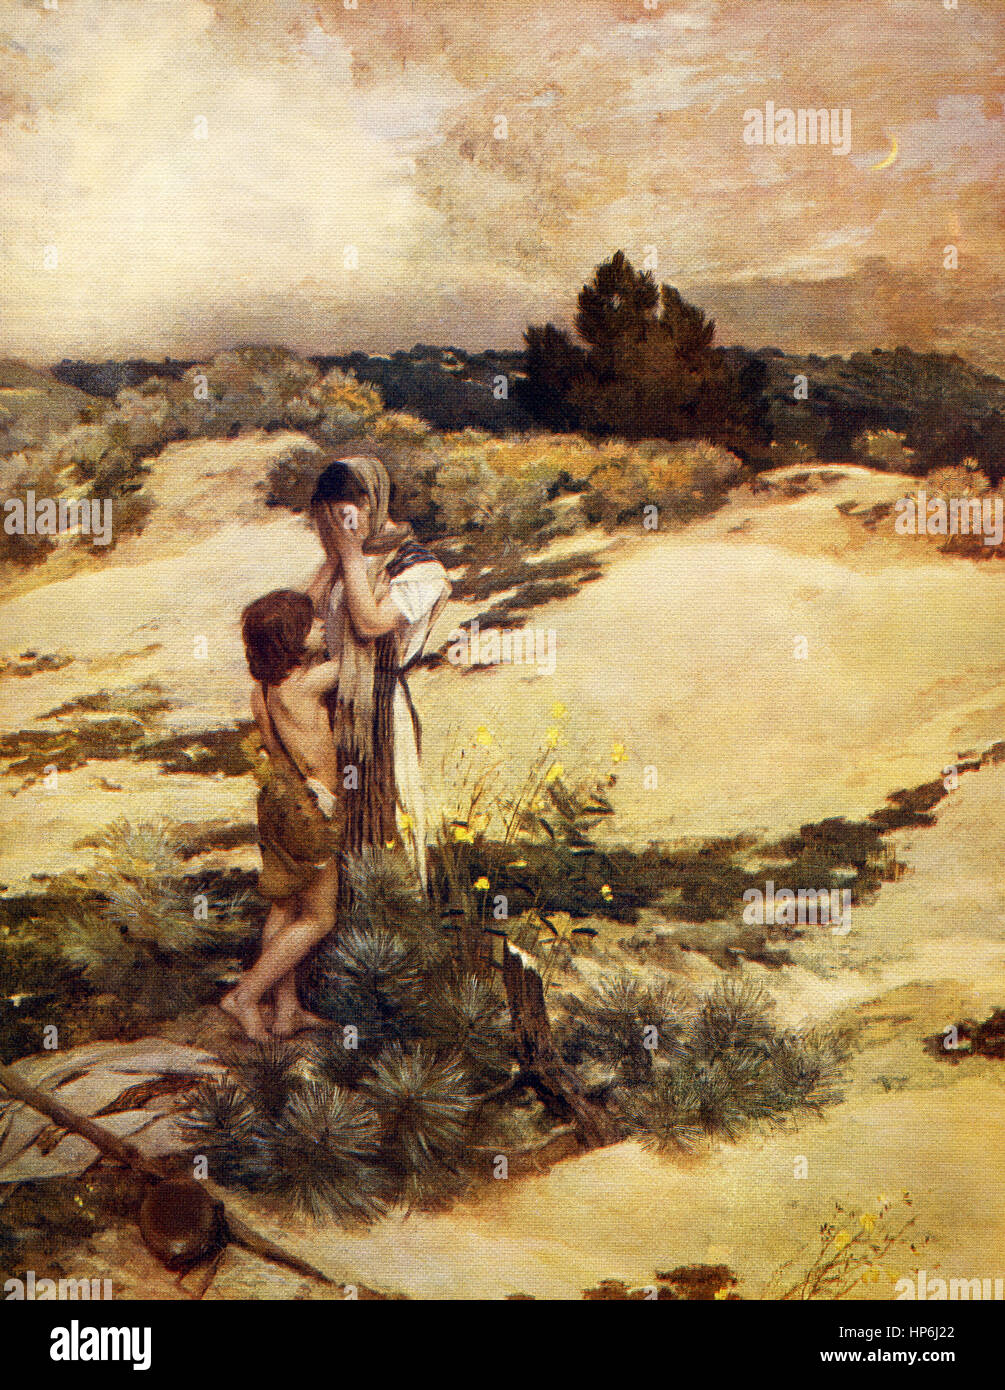 This painting, titled Ishmael, is by the English artist Jean Charles Gazin ( 1840-1901). The subject is dramatic: - Stock Image